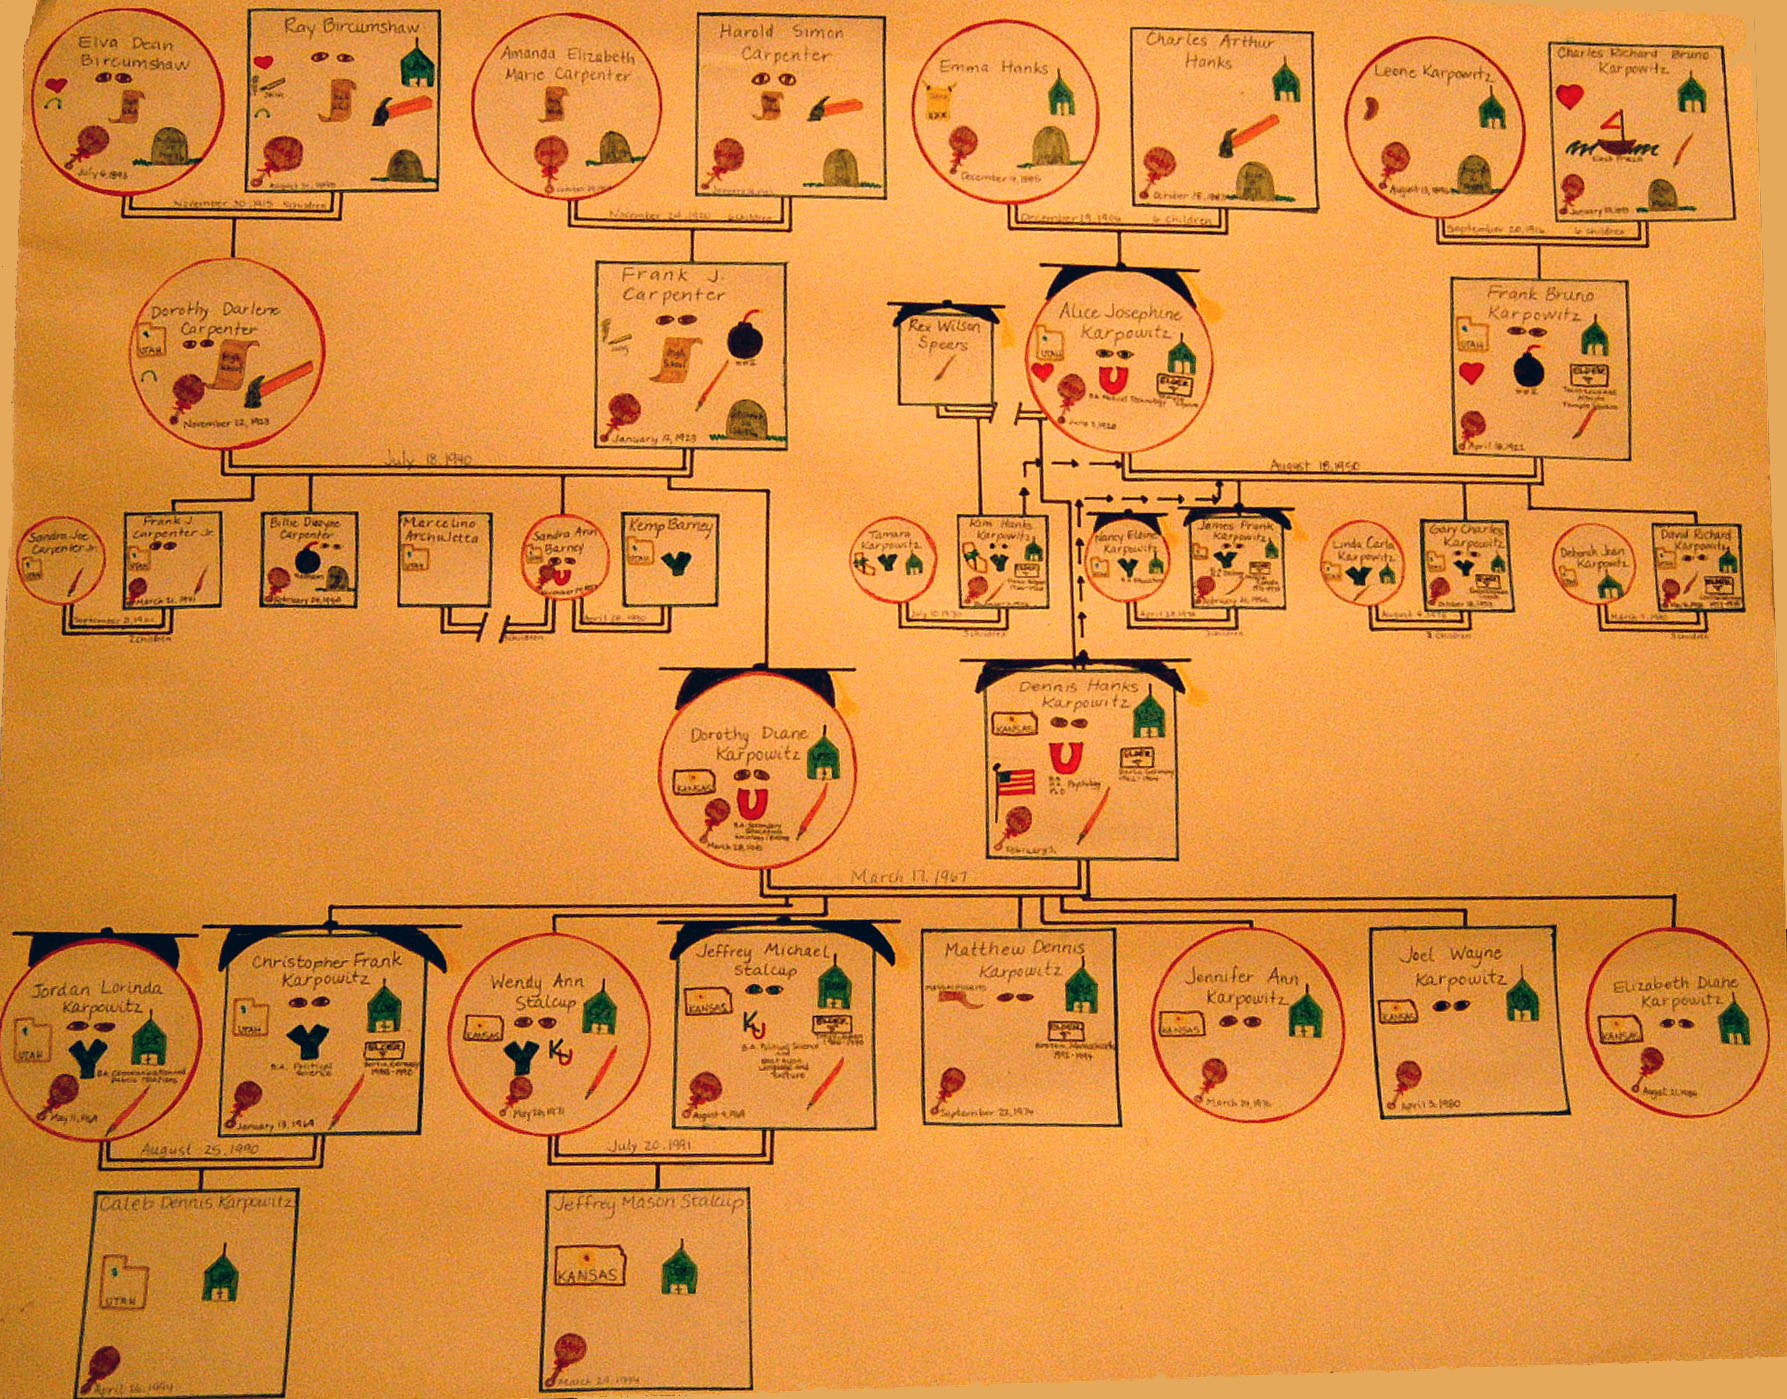 How to Construct a Genogram?